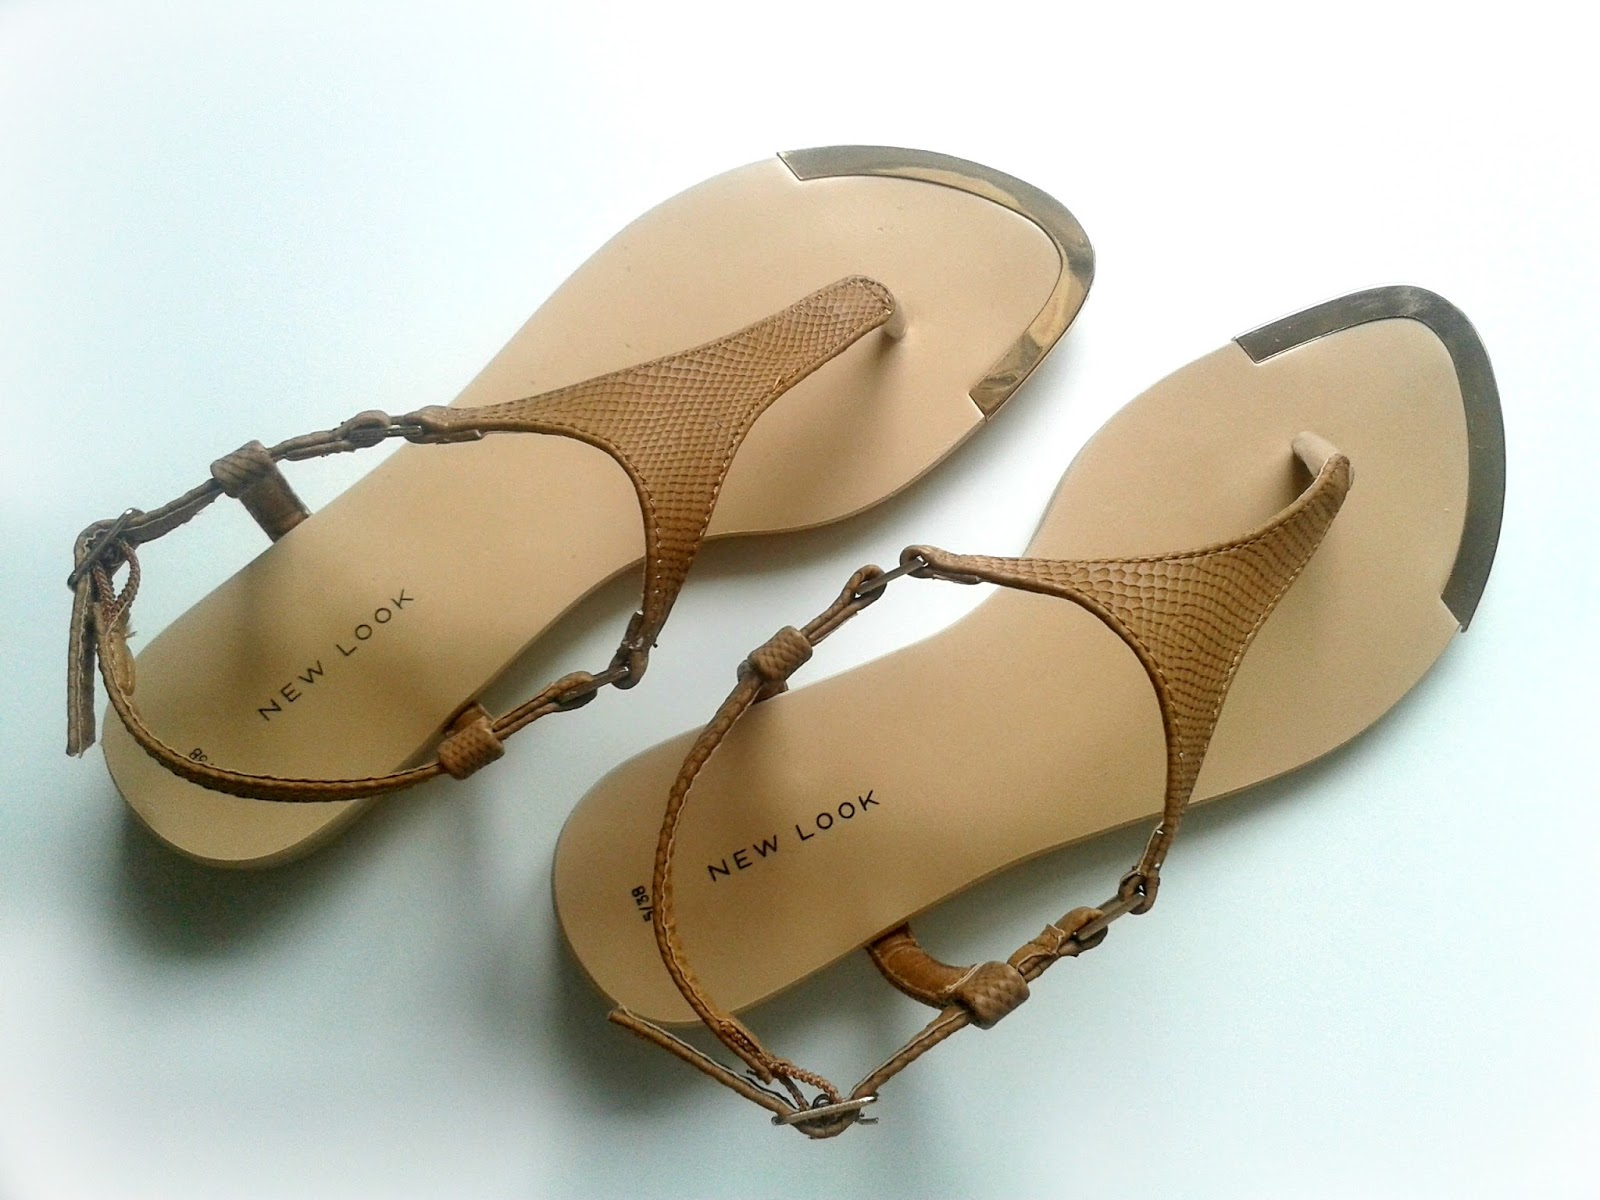 New Look Tan Leather Look T-Bar Sandals Outfit Review